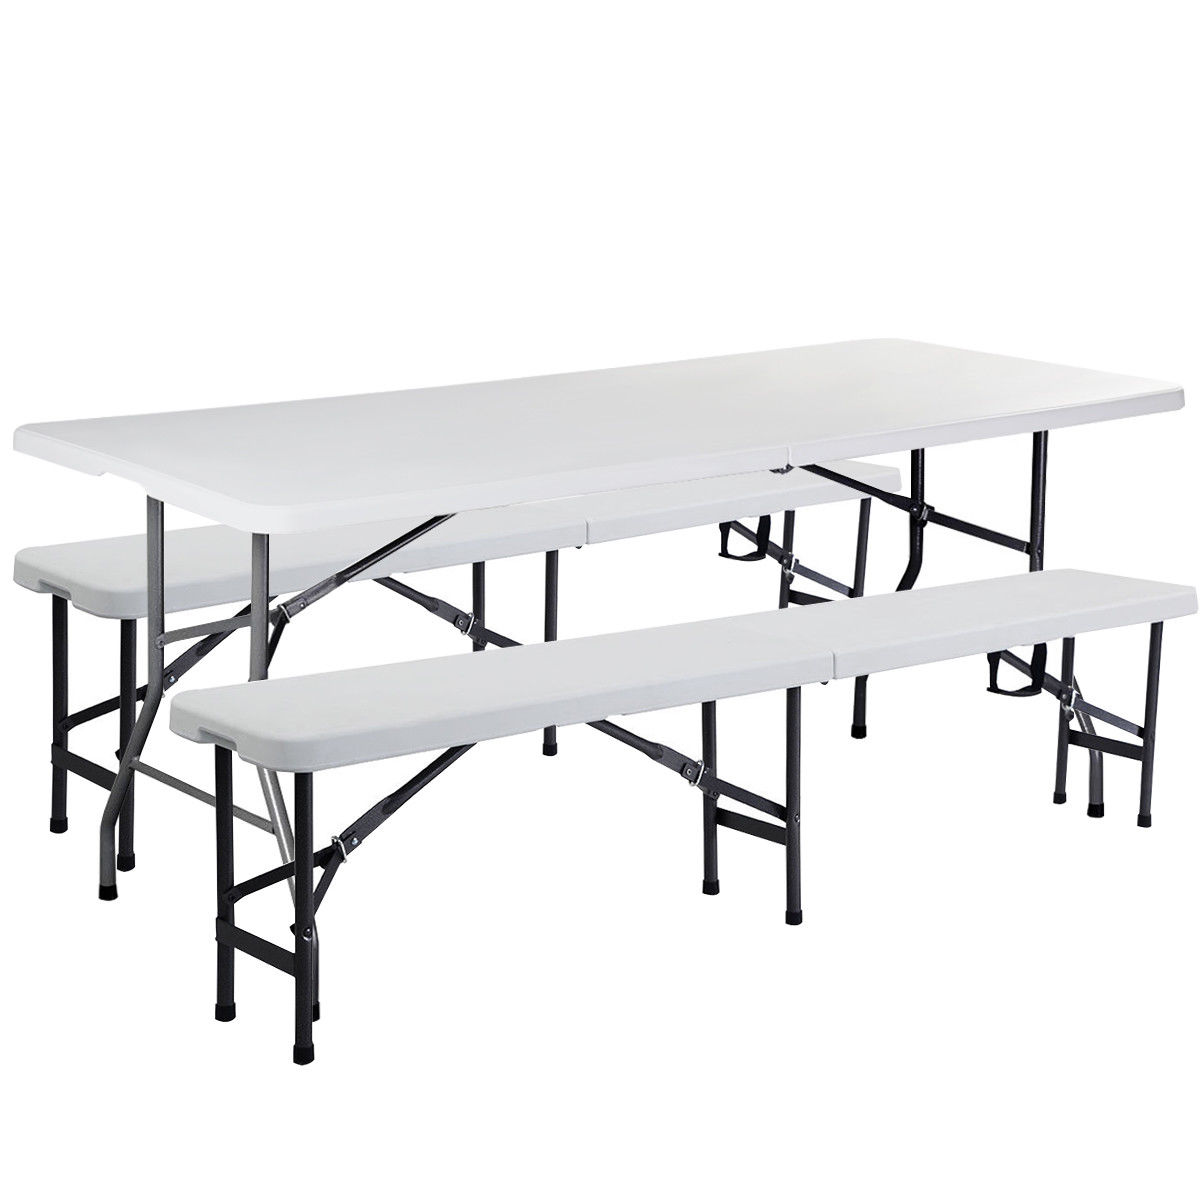 GHP Set of 3 Off White Steel Frame HDPE Multipurpose 4-Seat Table & 2-Pcs 8-Seat Bench